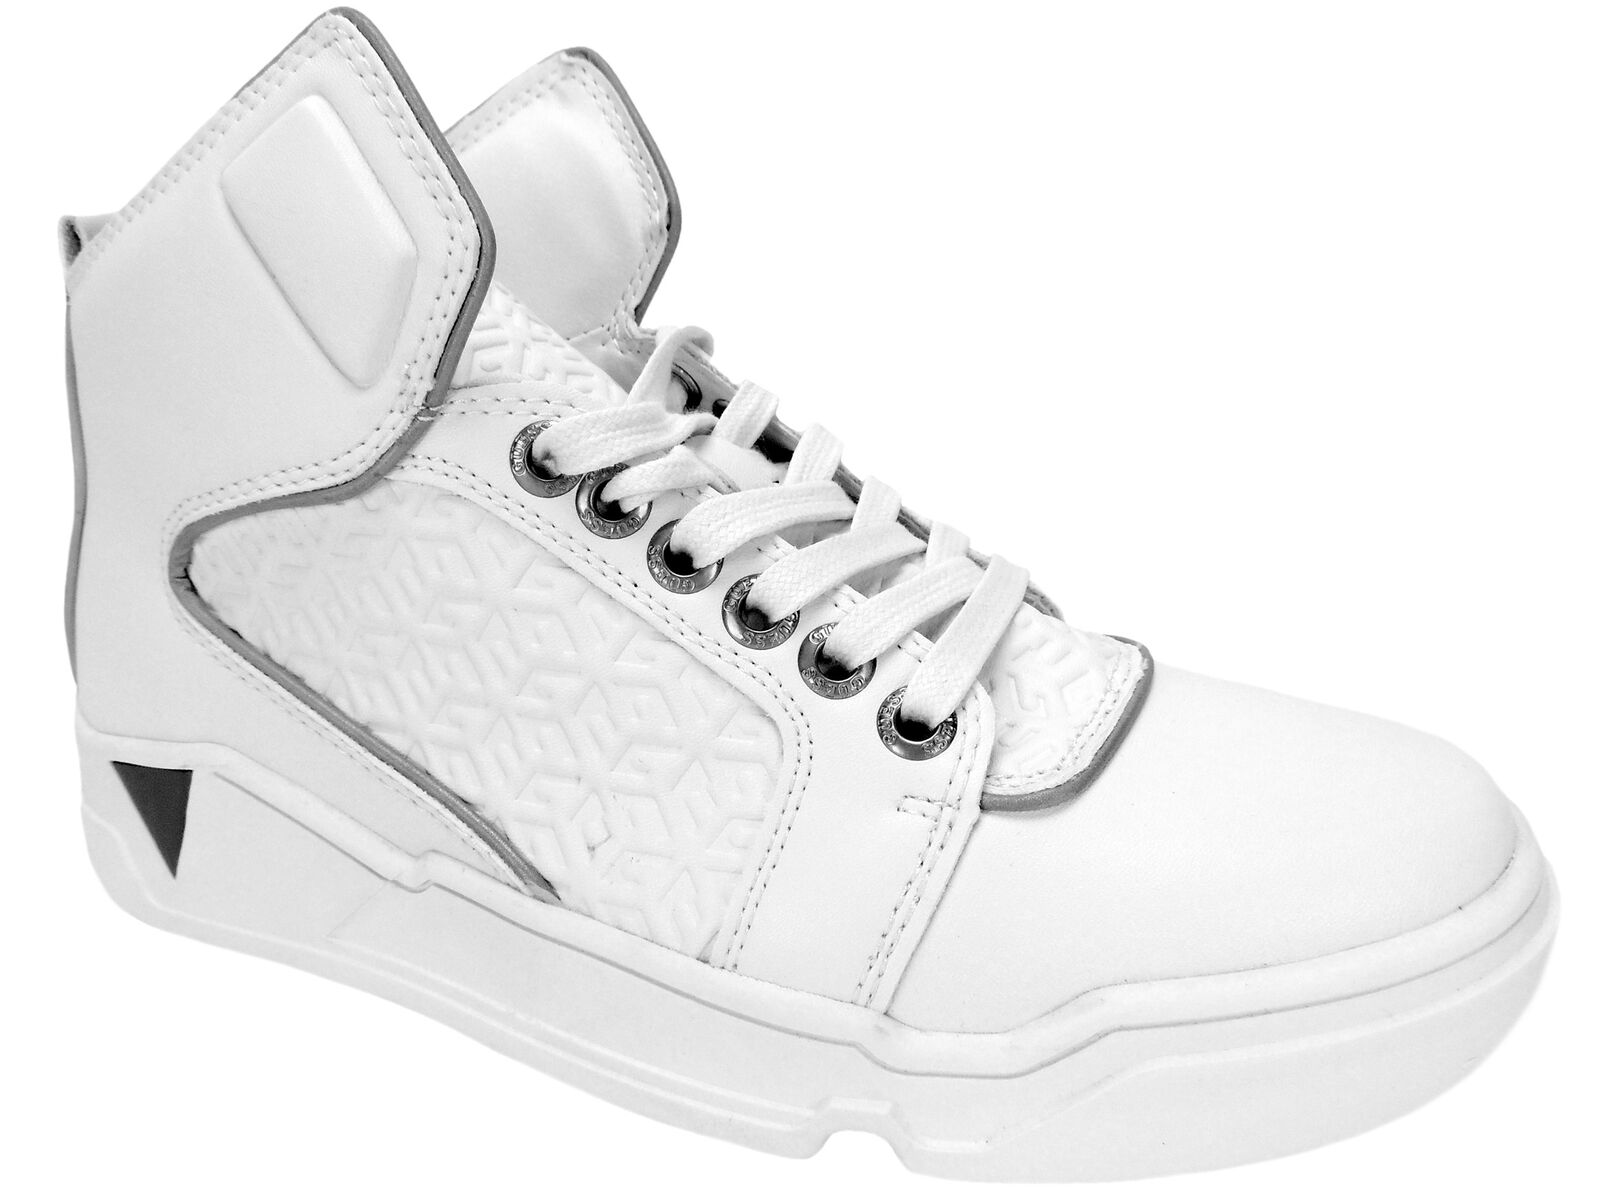 GUESS Men's Brice High-Tops White Fashion Sneakers Size 8 M